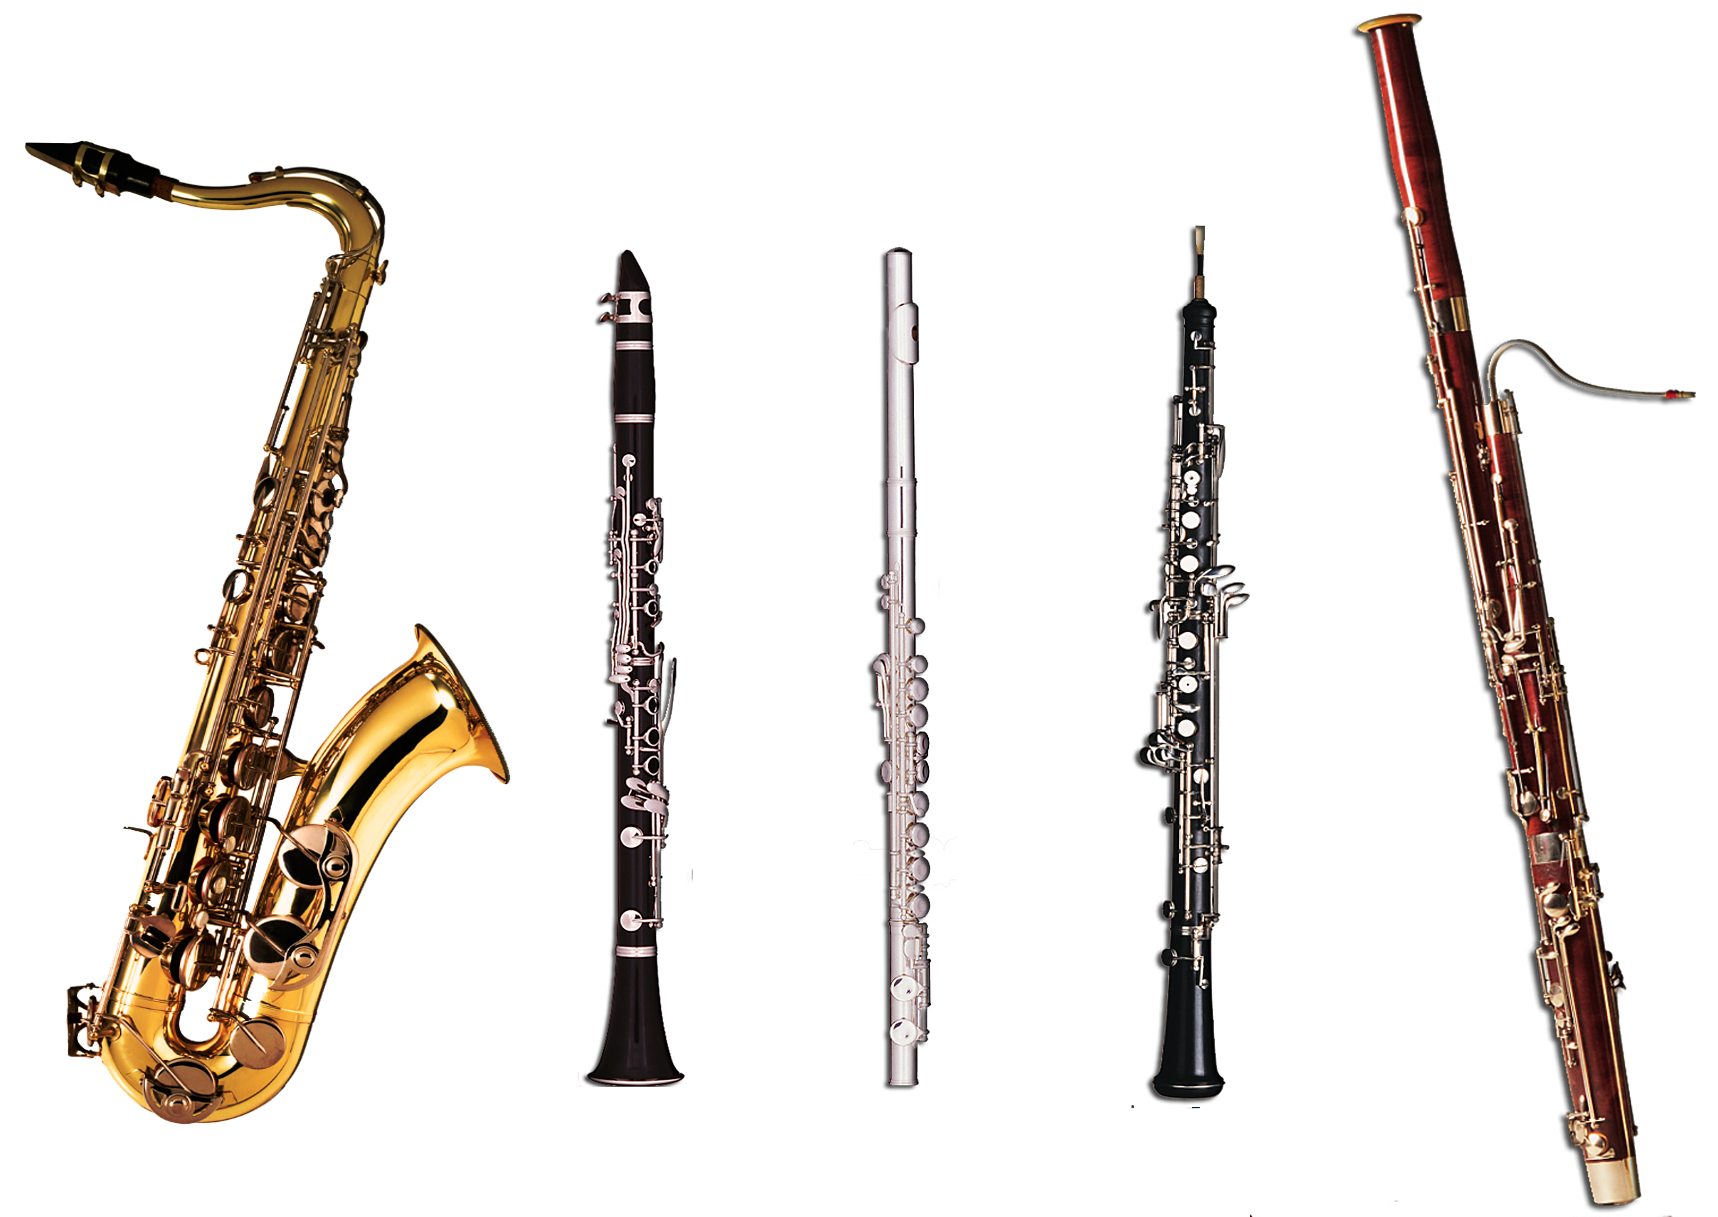 introduction to oboe and bassoon The bassoon underwent far-less-radical changes in the hands of hotteterre than the oboe the former curtal was simply built in four sections and lengthened to produce b♭′ the date of the bassoon's introduction into the orchestra is uncertain, since the double-reed instrument in the in performance, the bassoon is held aslant on a sling.